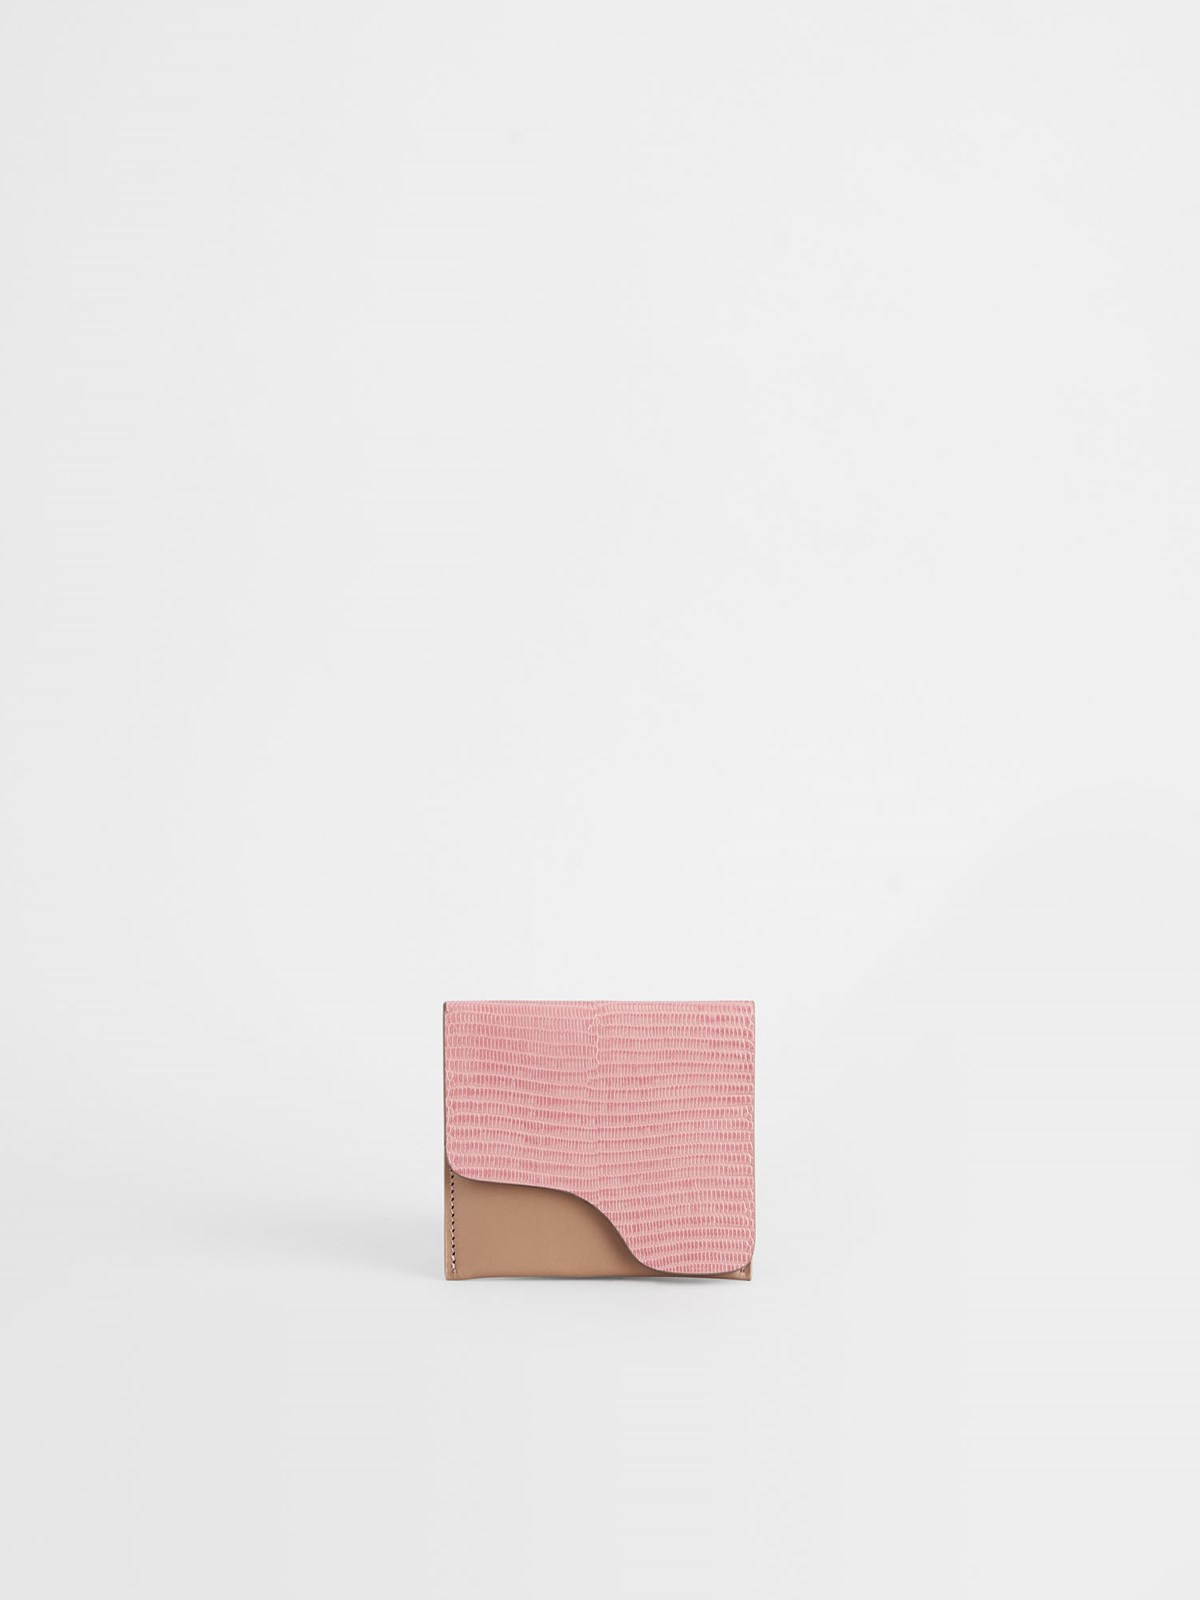 Olba Candy Pink Wallet